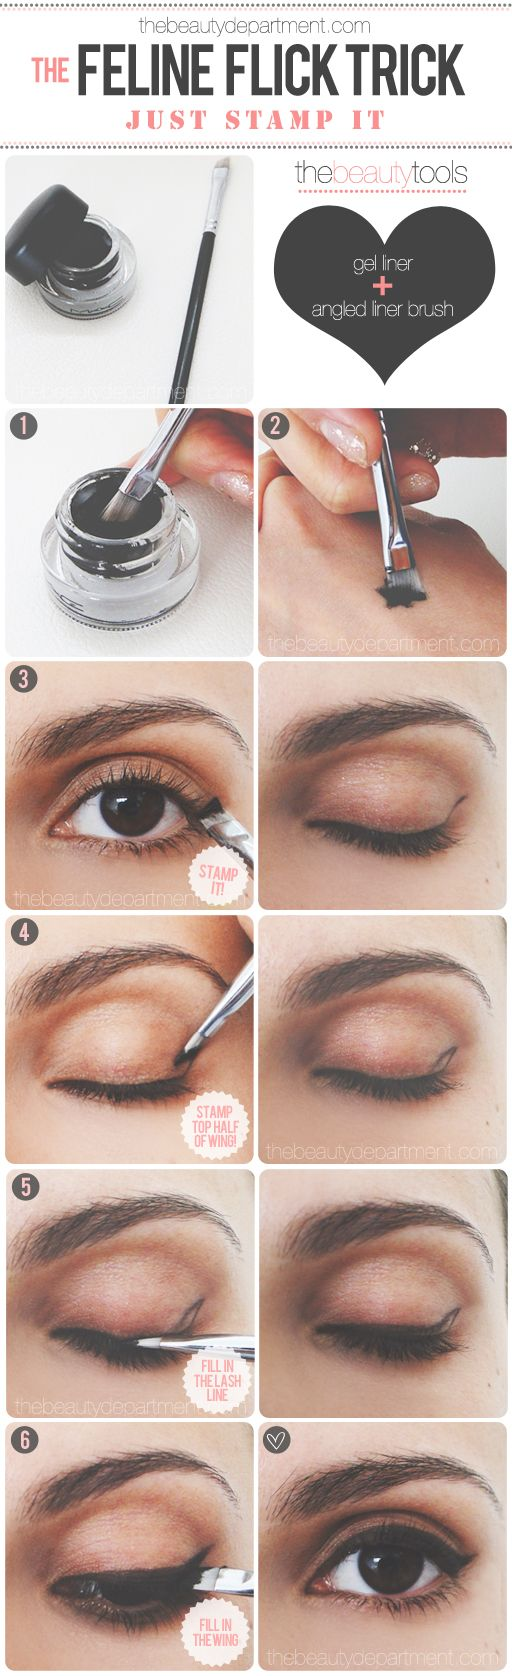 The width of the brush is the length of the wing, so just stamp it while angling it to the end of your brow!